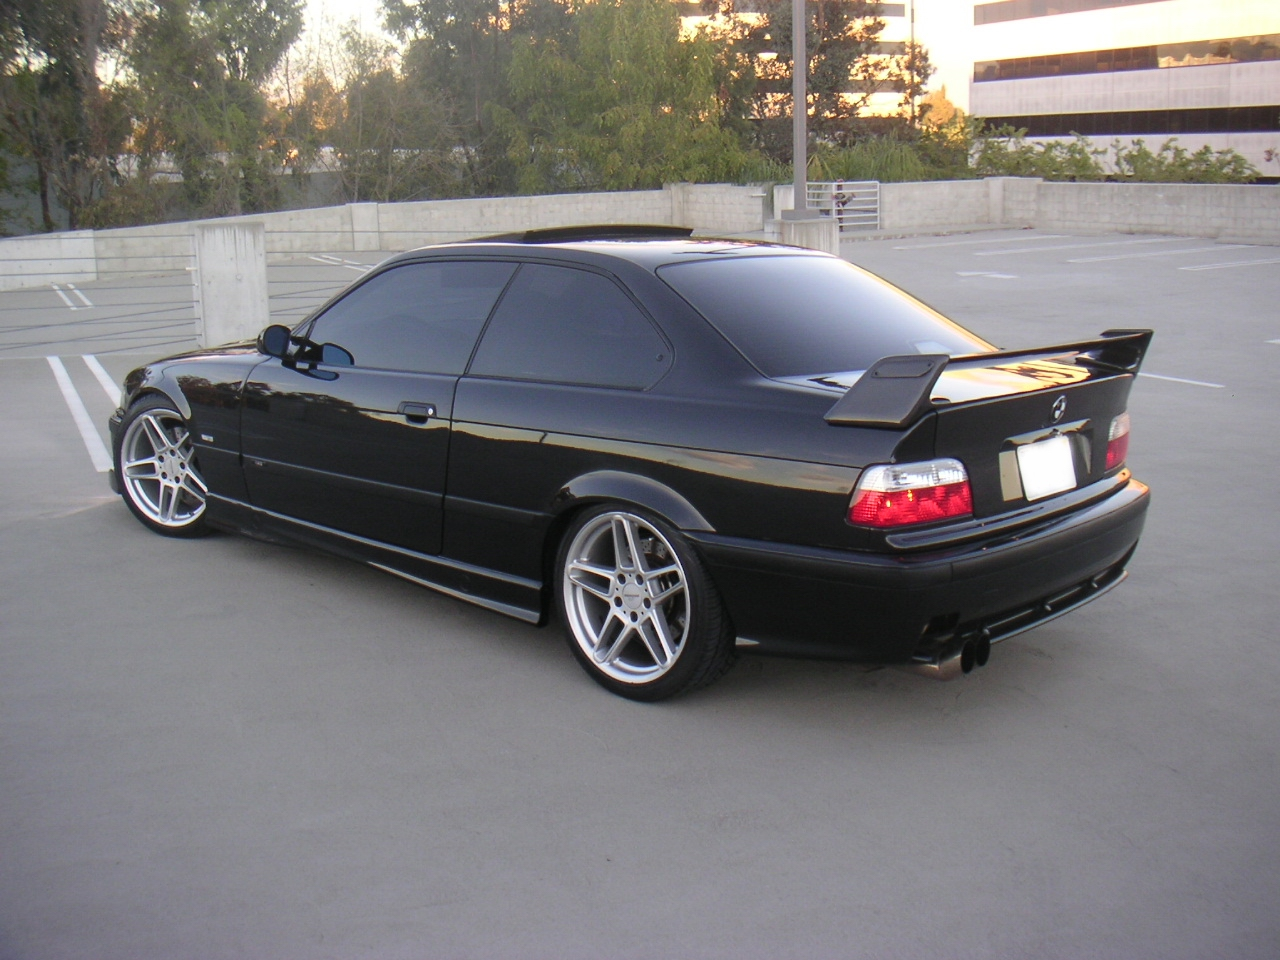 BMW 3 series 318is 2000 photo - 5